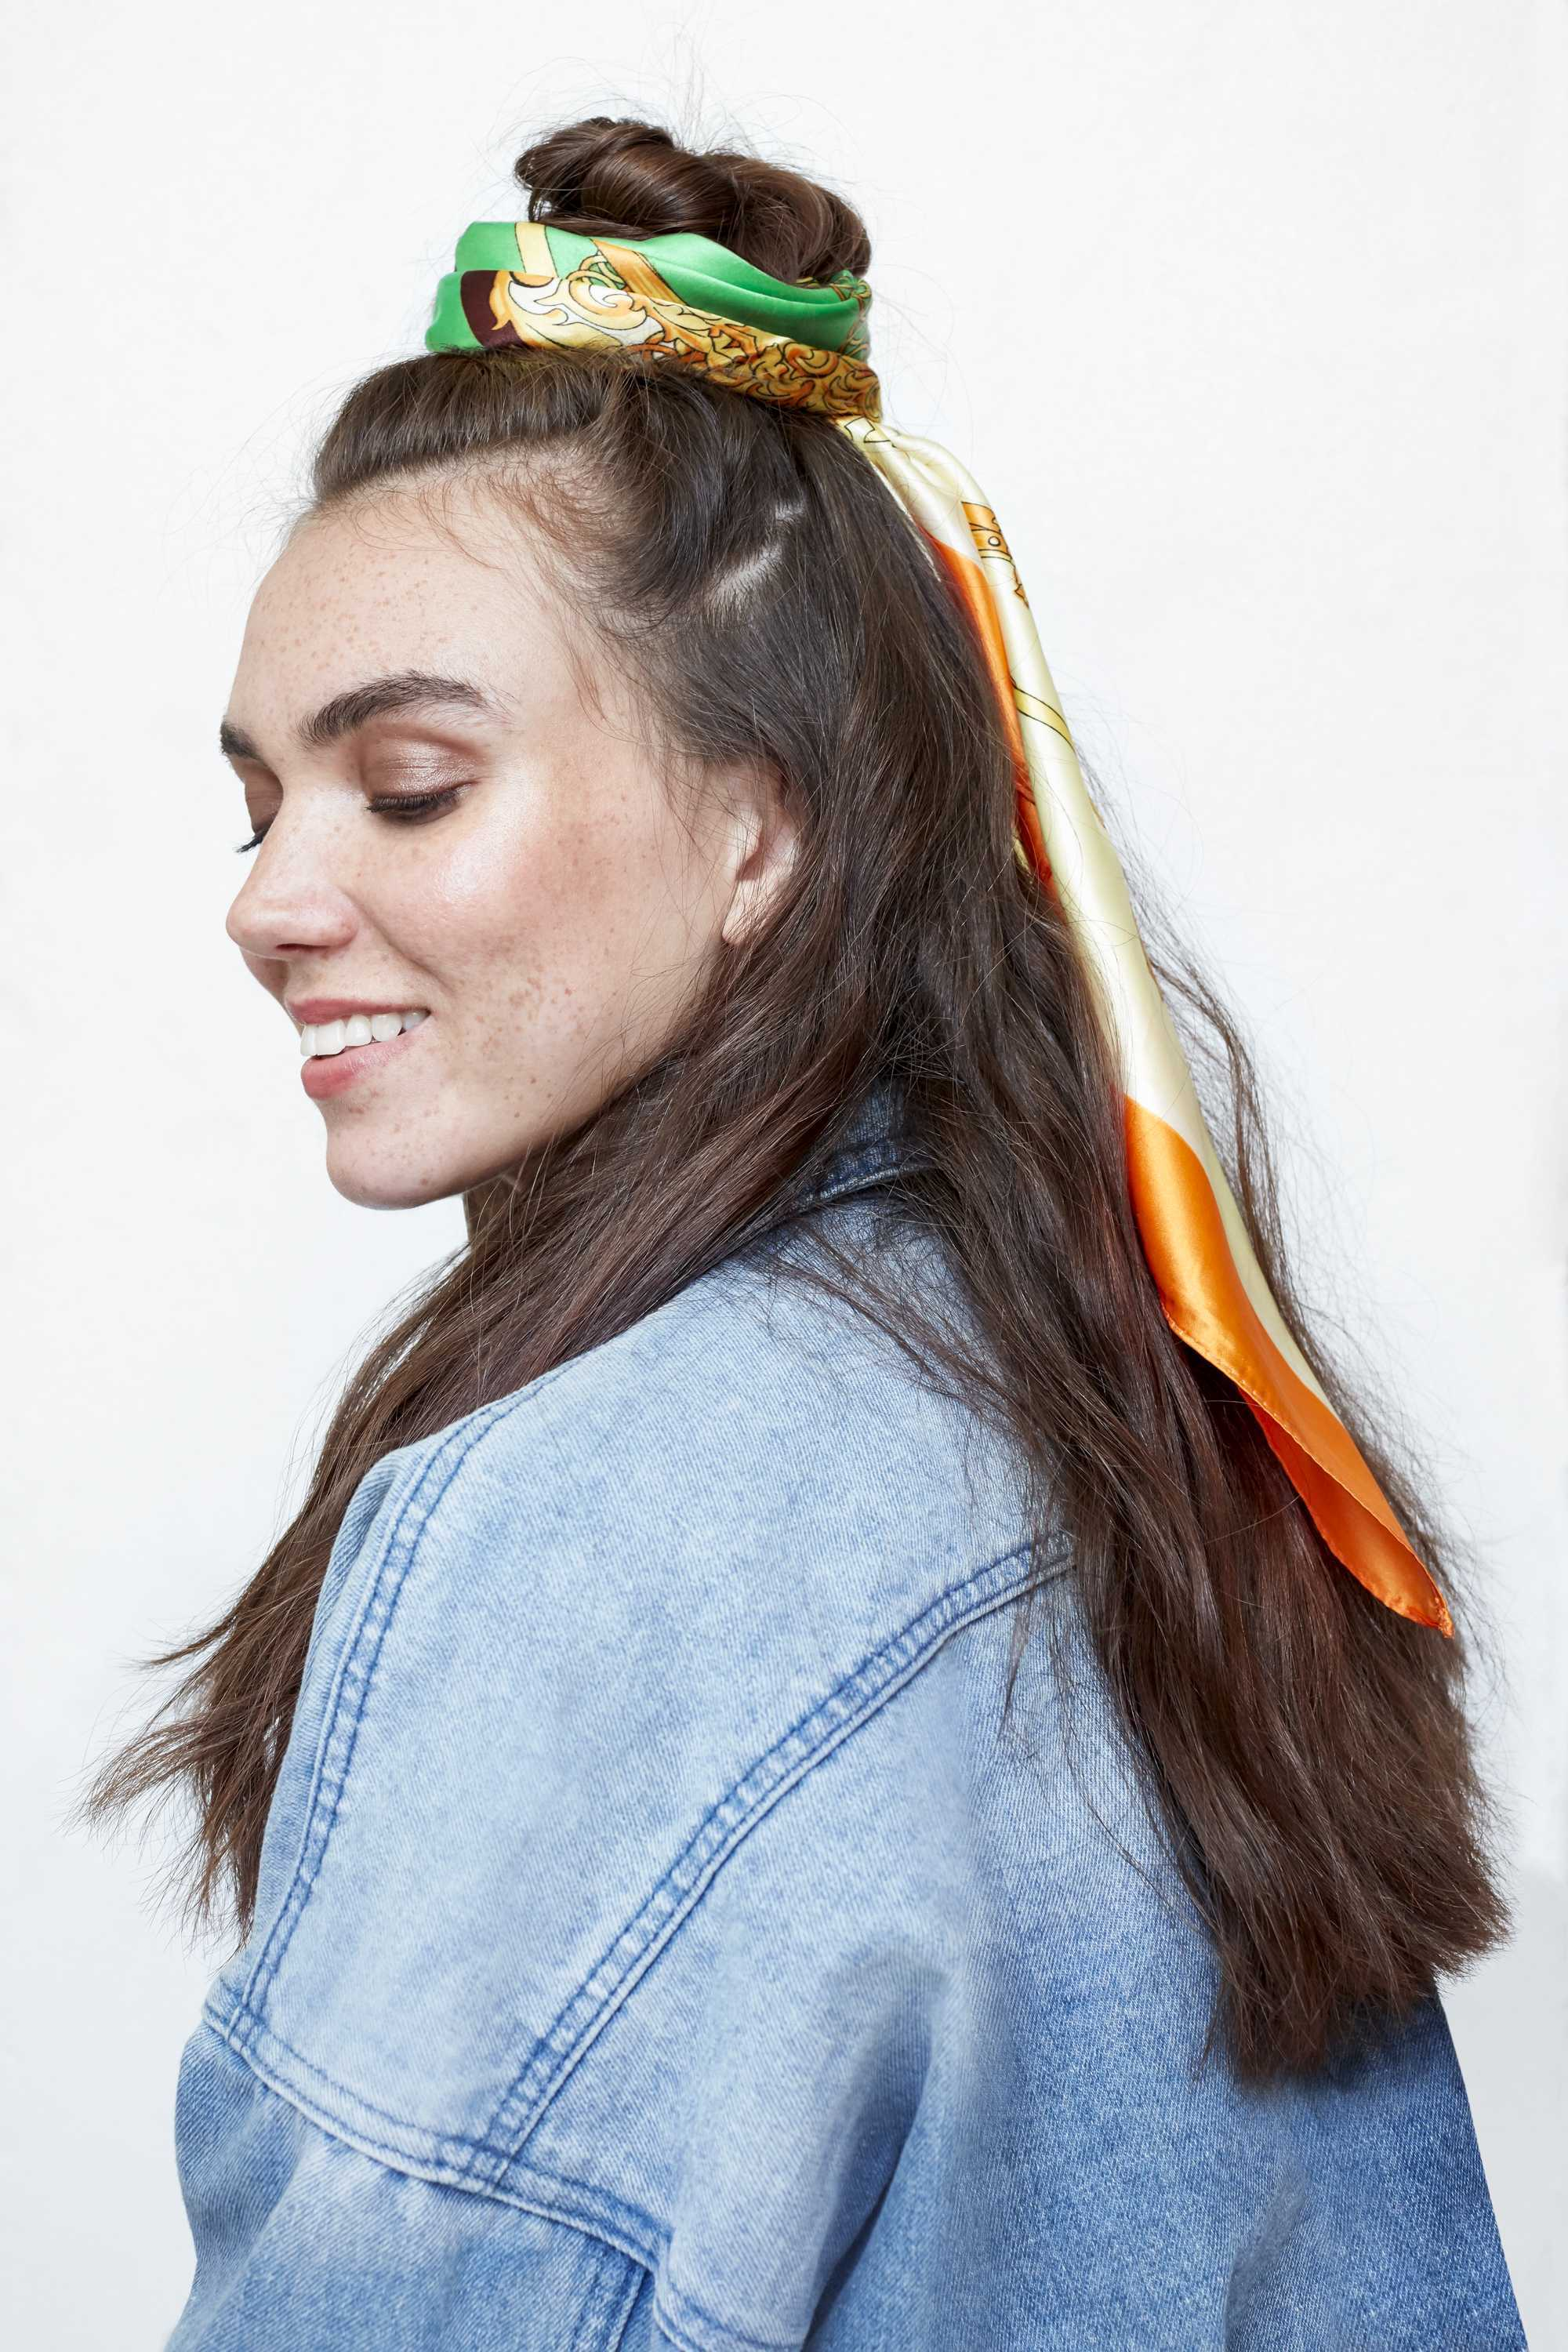 freckled brunette model with her long dark wavy hair in a half up half down bun with a green and orange headscarf tied around the bun wearing a denim jacket